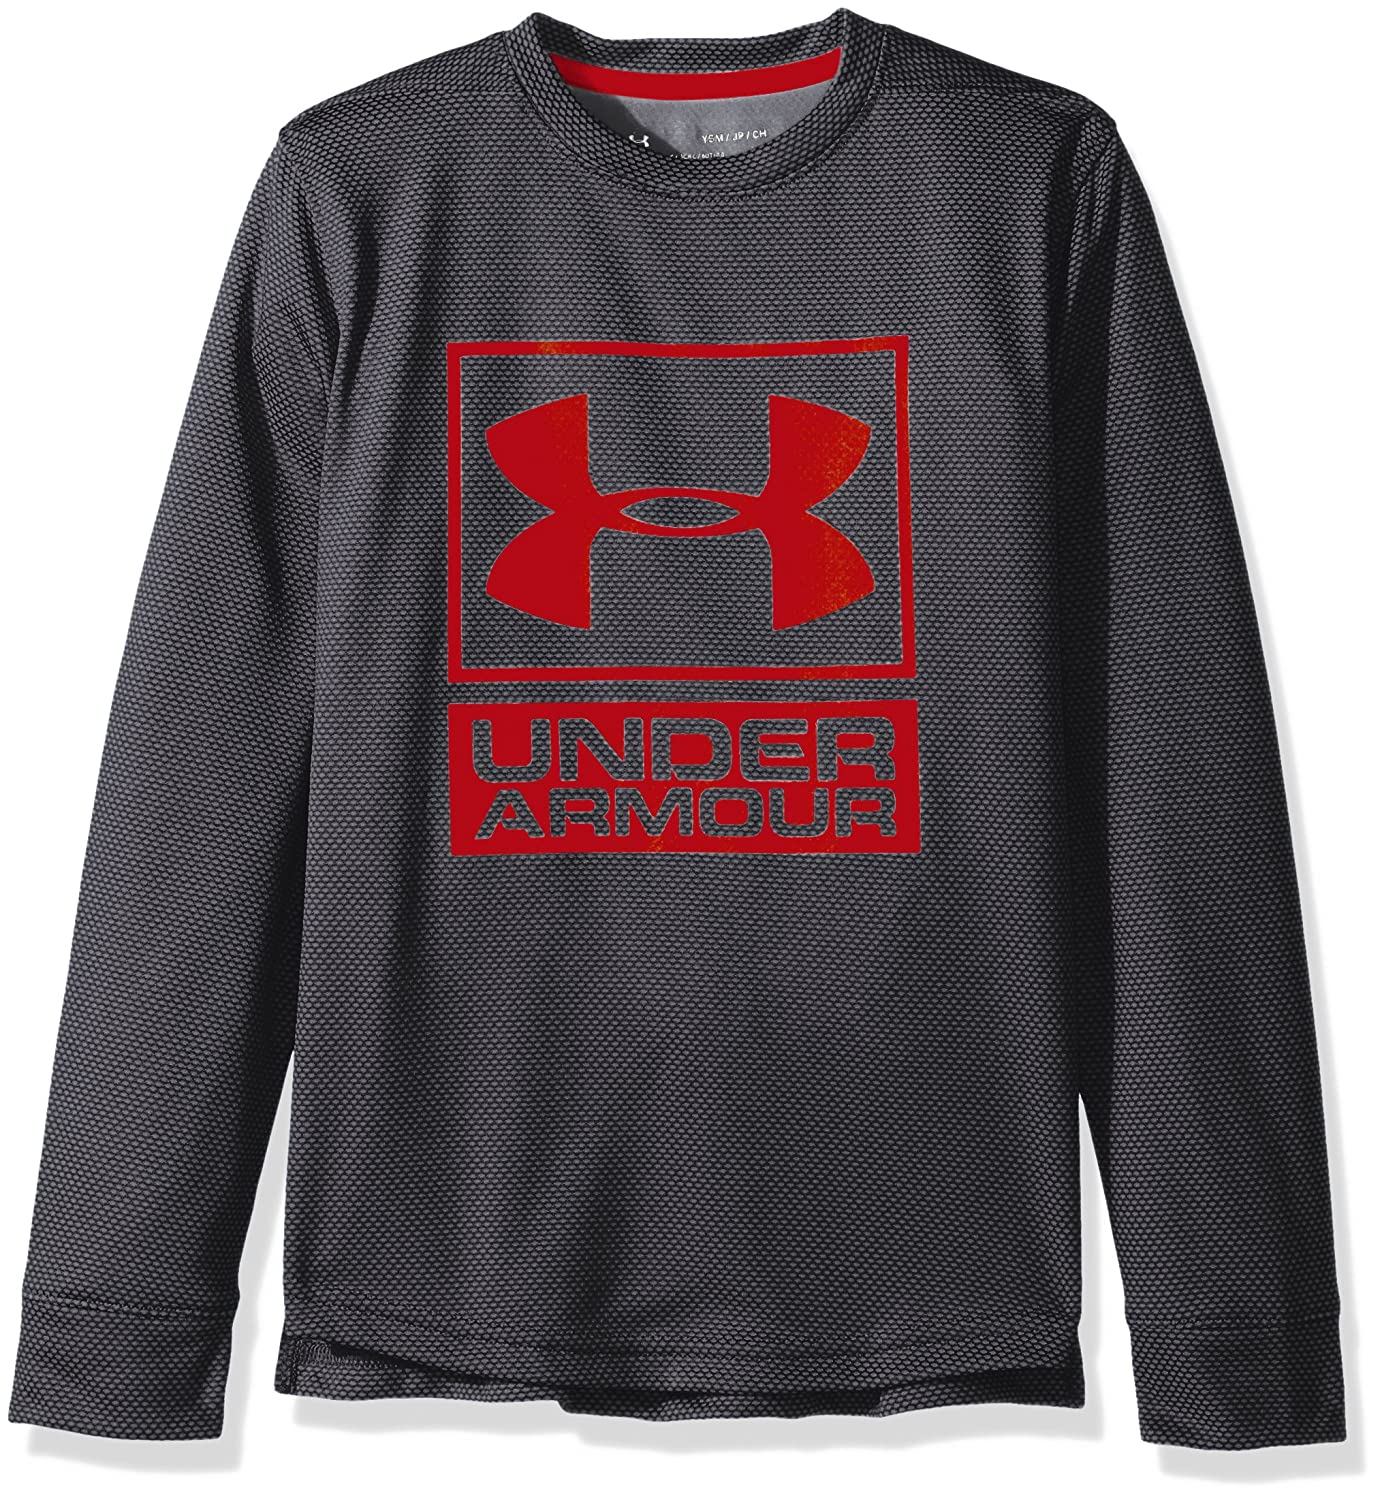 Under Armour Boys' Textured Tech Crew Under Armour Apparel 1299372